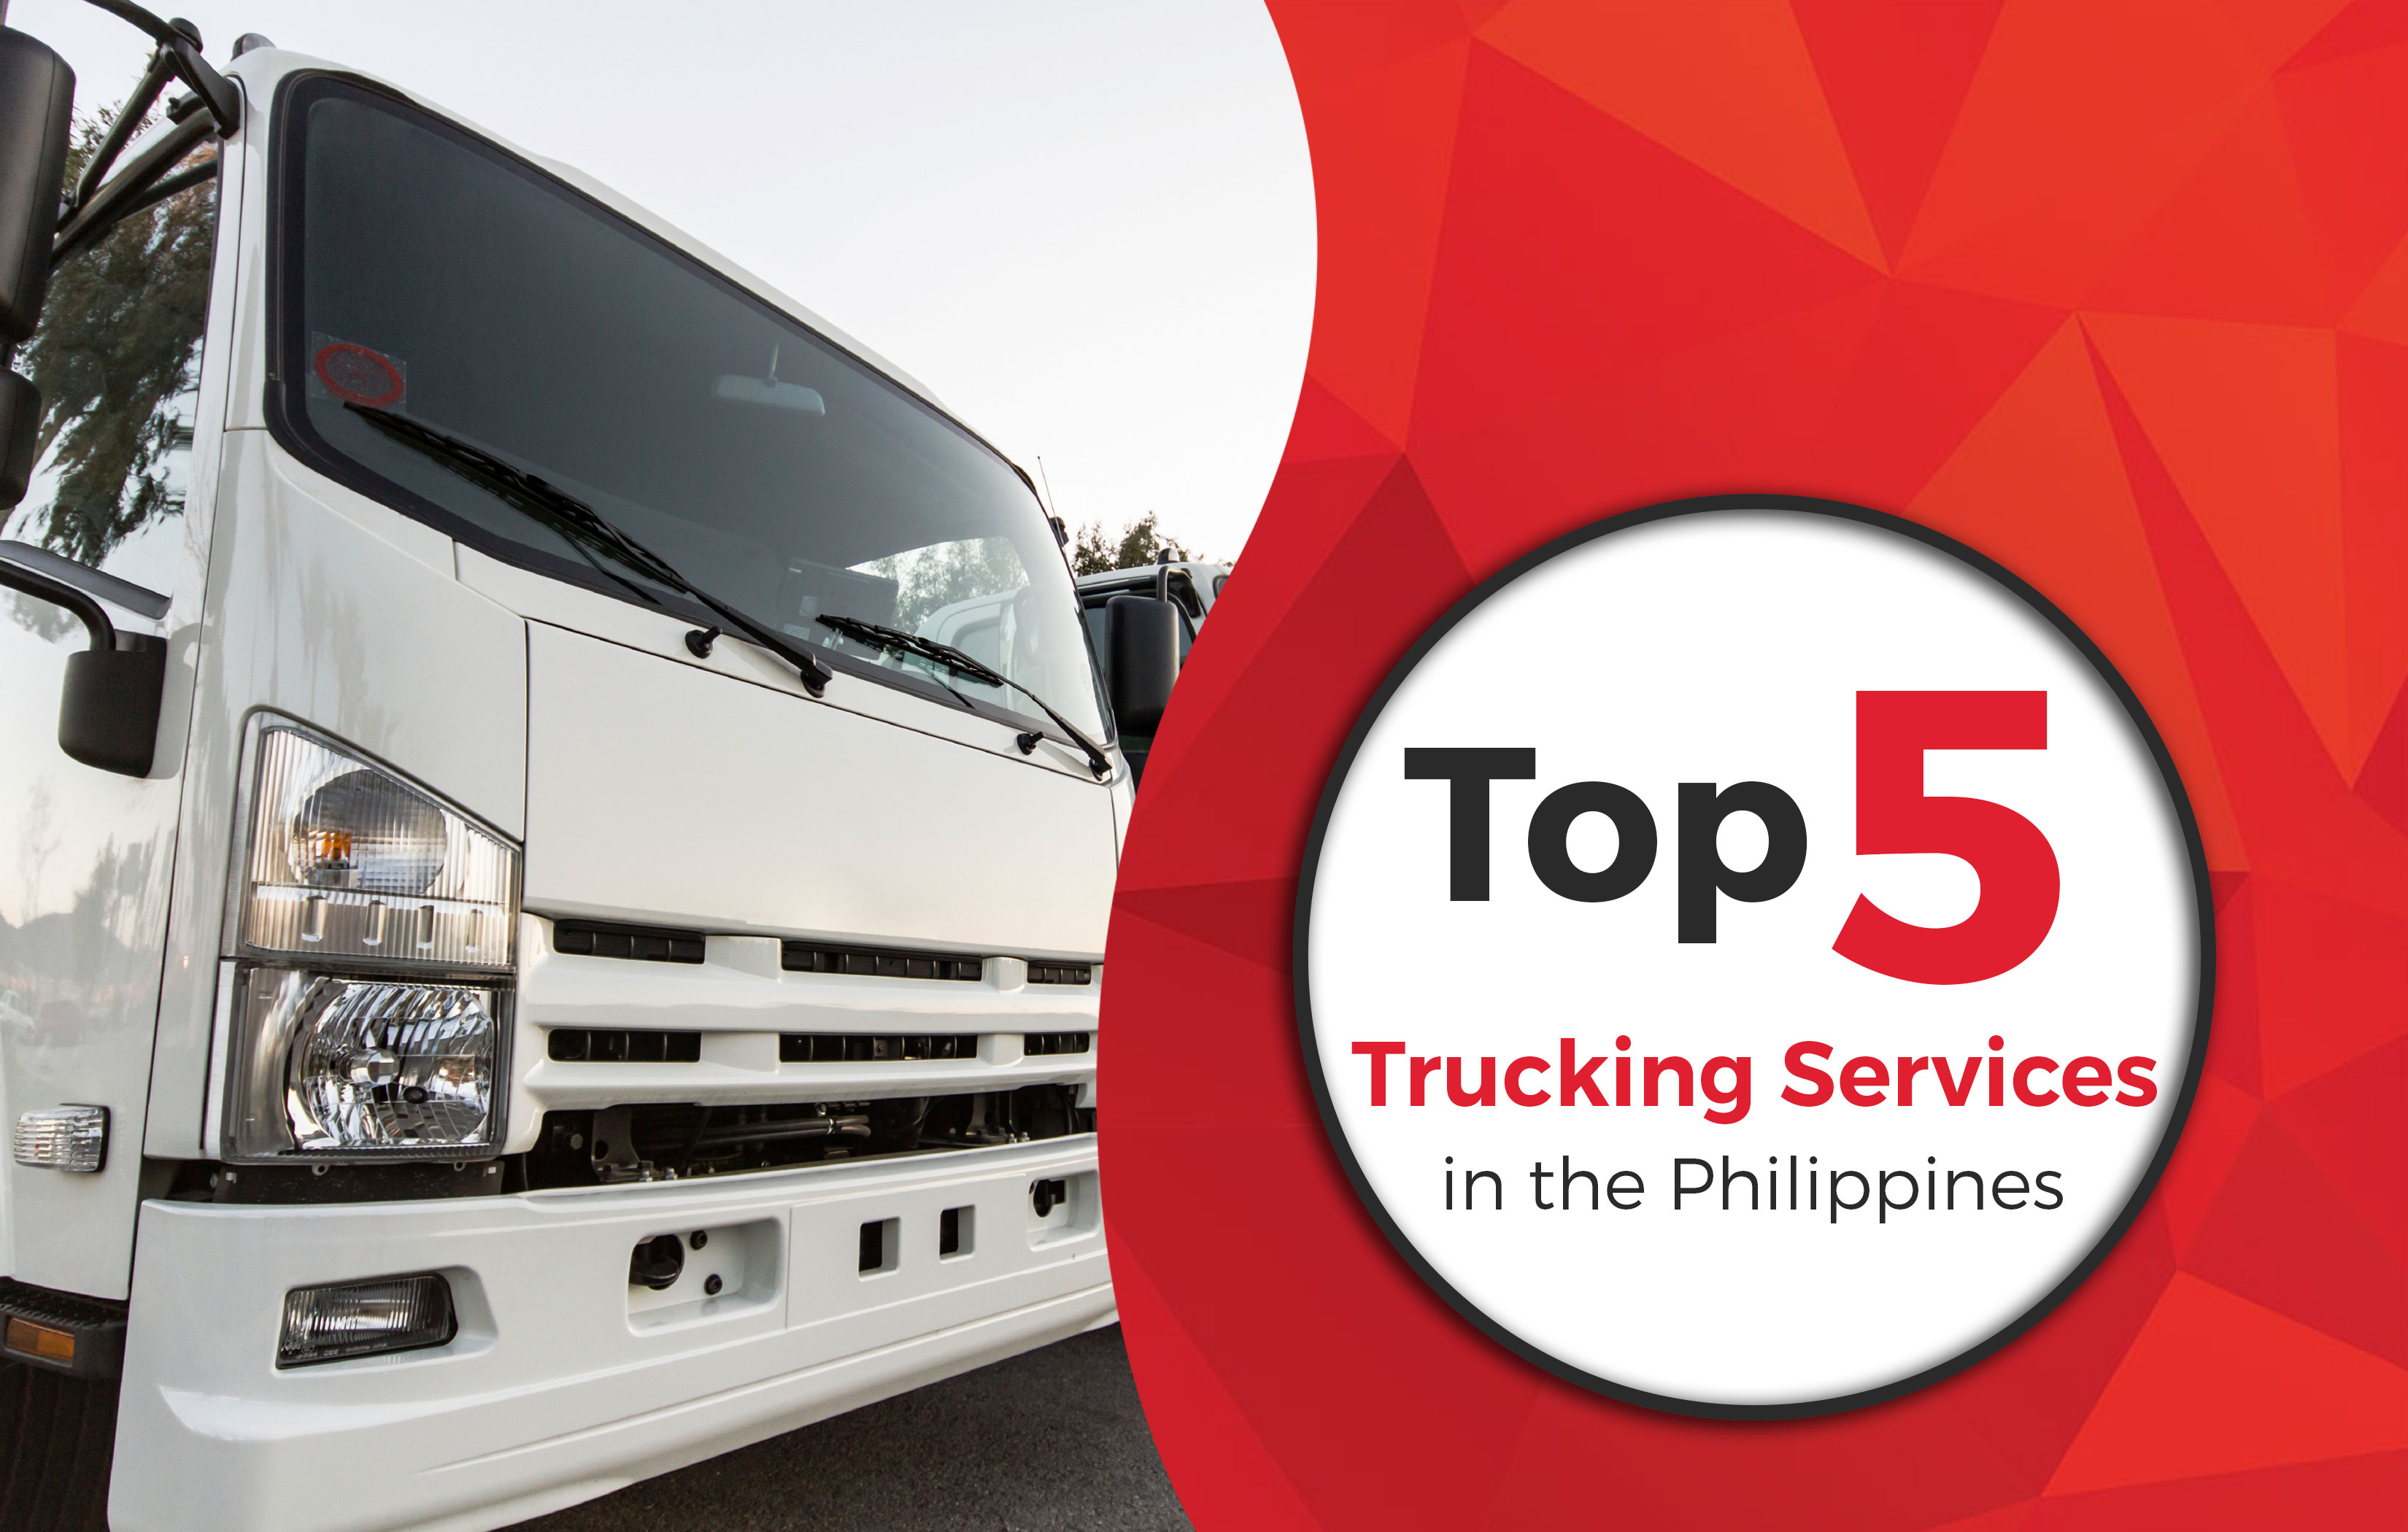 Top 5 trucking services in the philippines